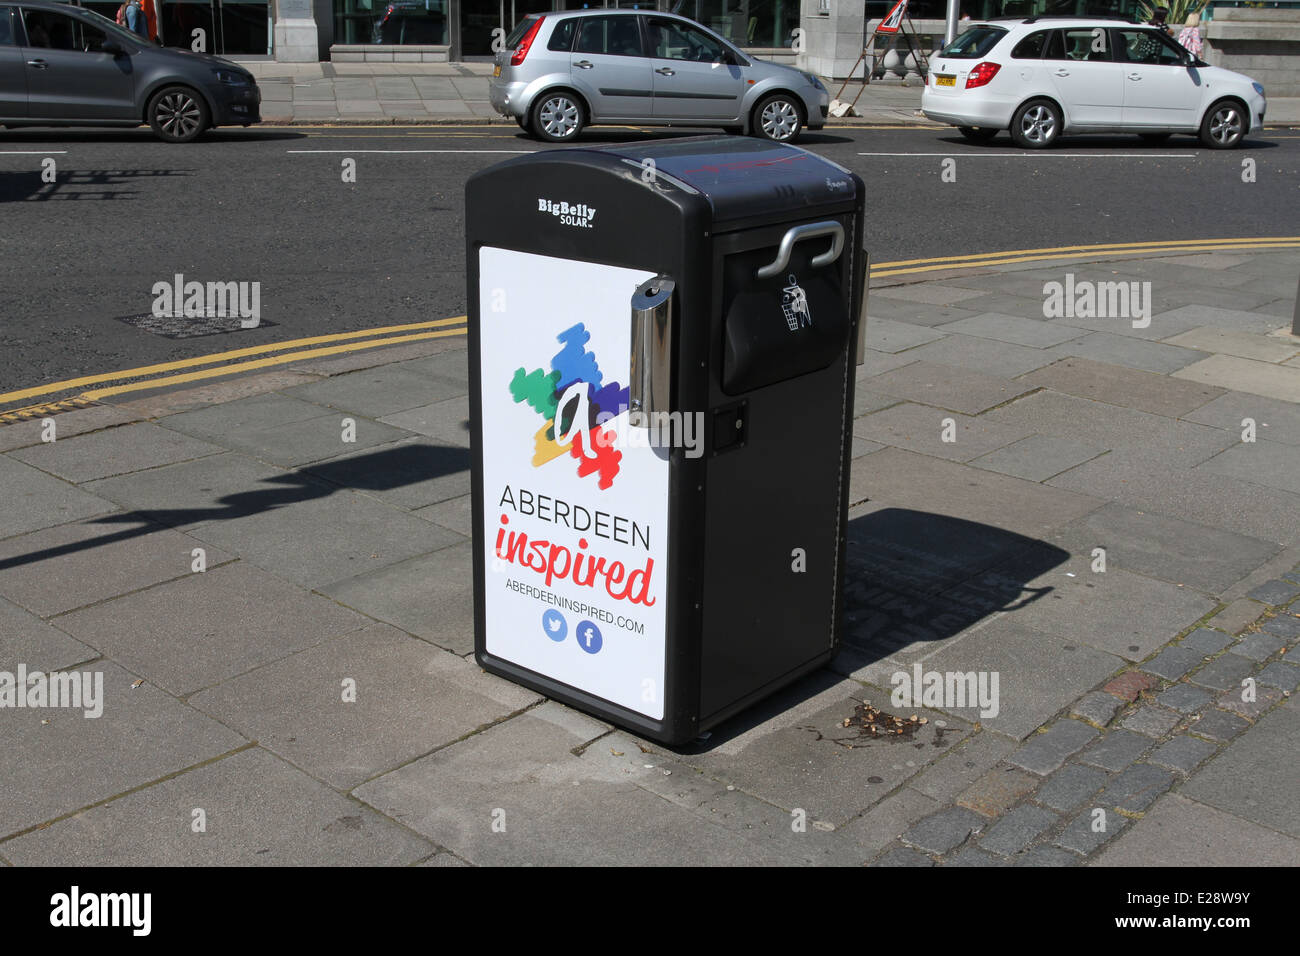 Big W Rubbish Bin Big Belly Stock Photos And Big Belly Stock Images Alamy